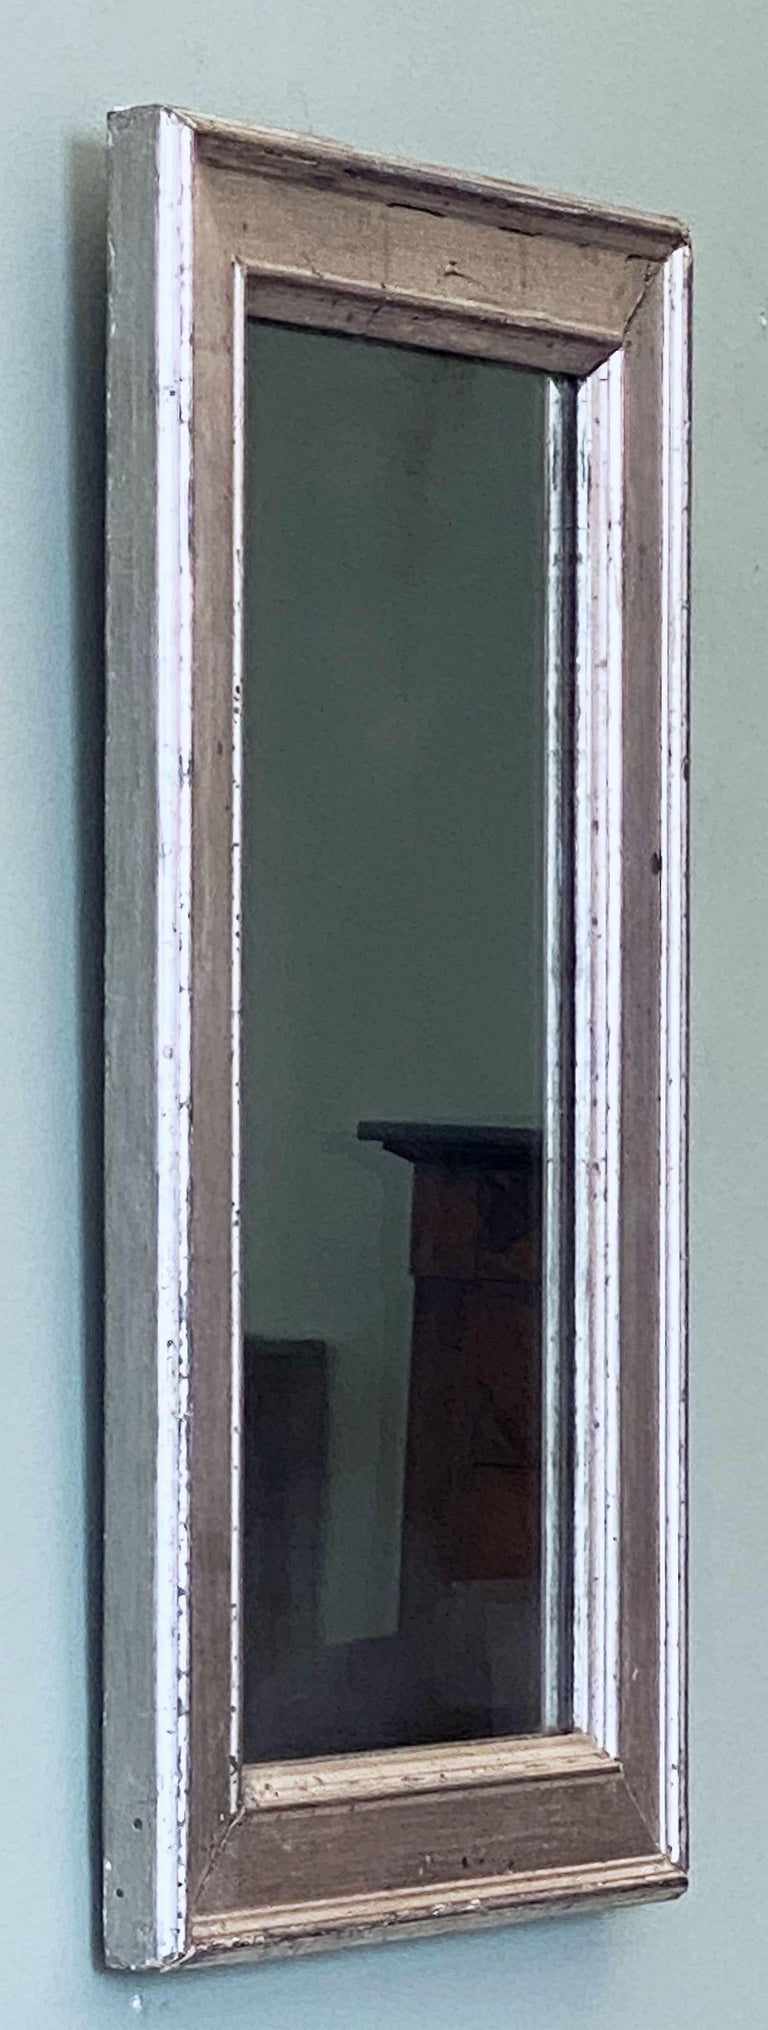 French Rectangular Silver Gilt Wall Mirror (H 19 1/2 x W 12 1/4) In Good Condition For Sale In Austin, TX